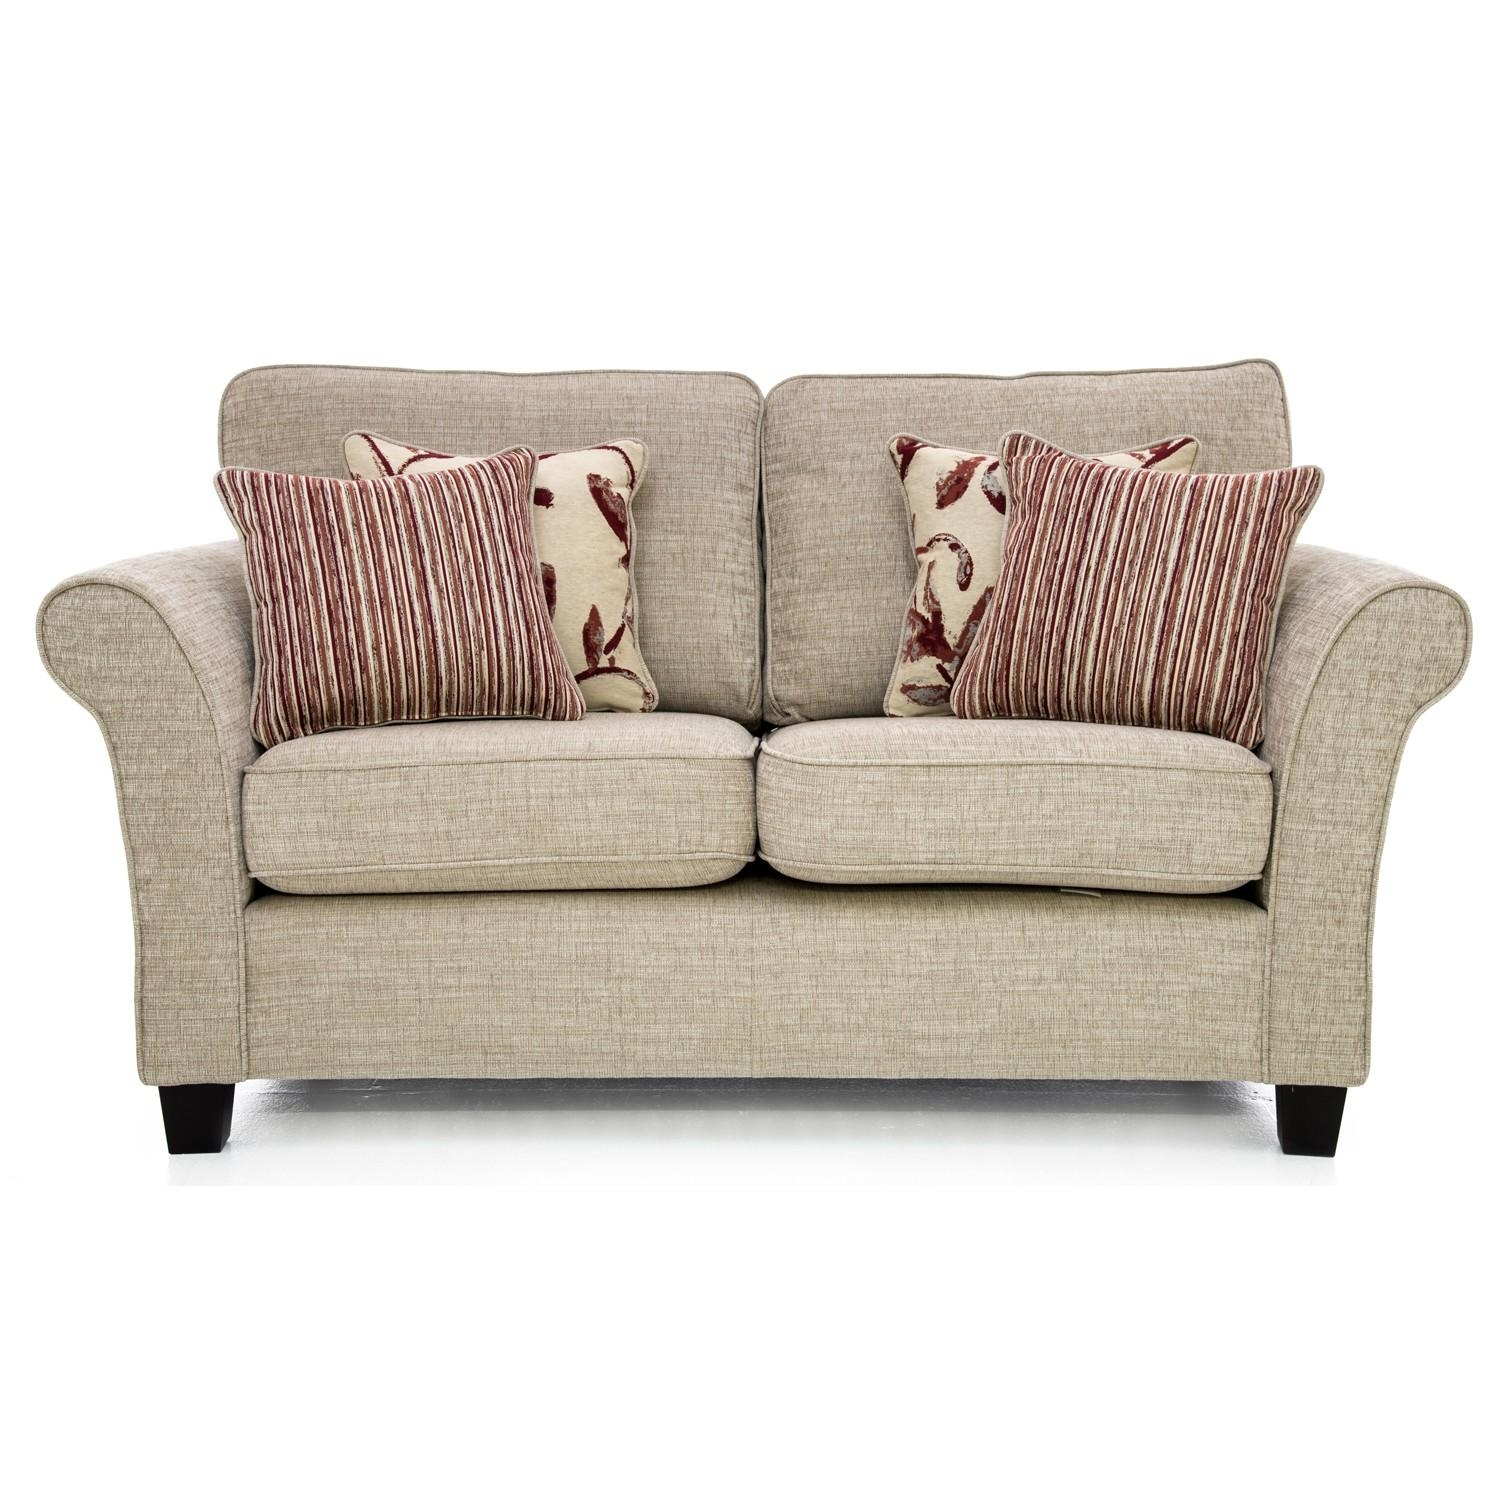 Small 2 Seater Sofa 95 With Small 2 Seater Sofa | Jinanhongyu In Small 2 Seater Sofas (Image 7 of 20)